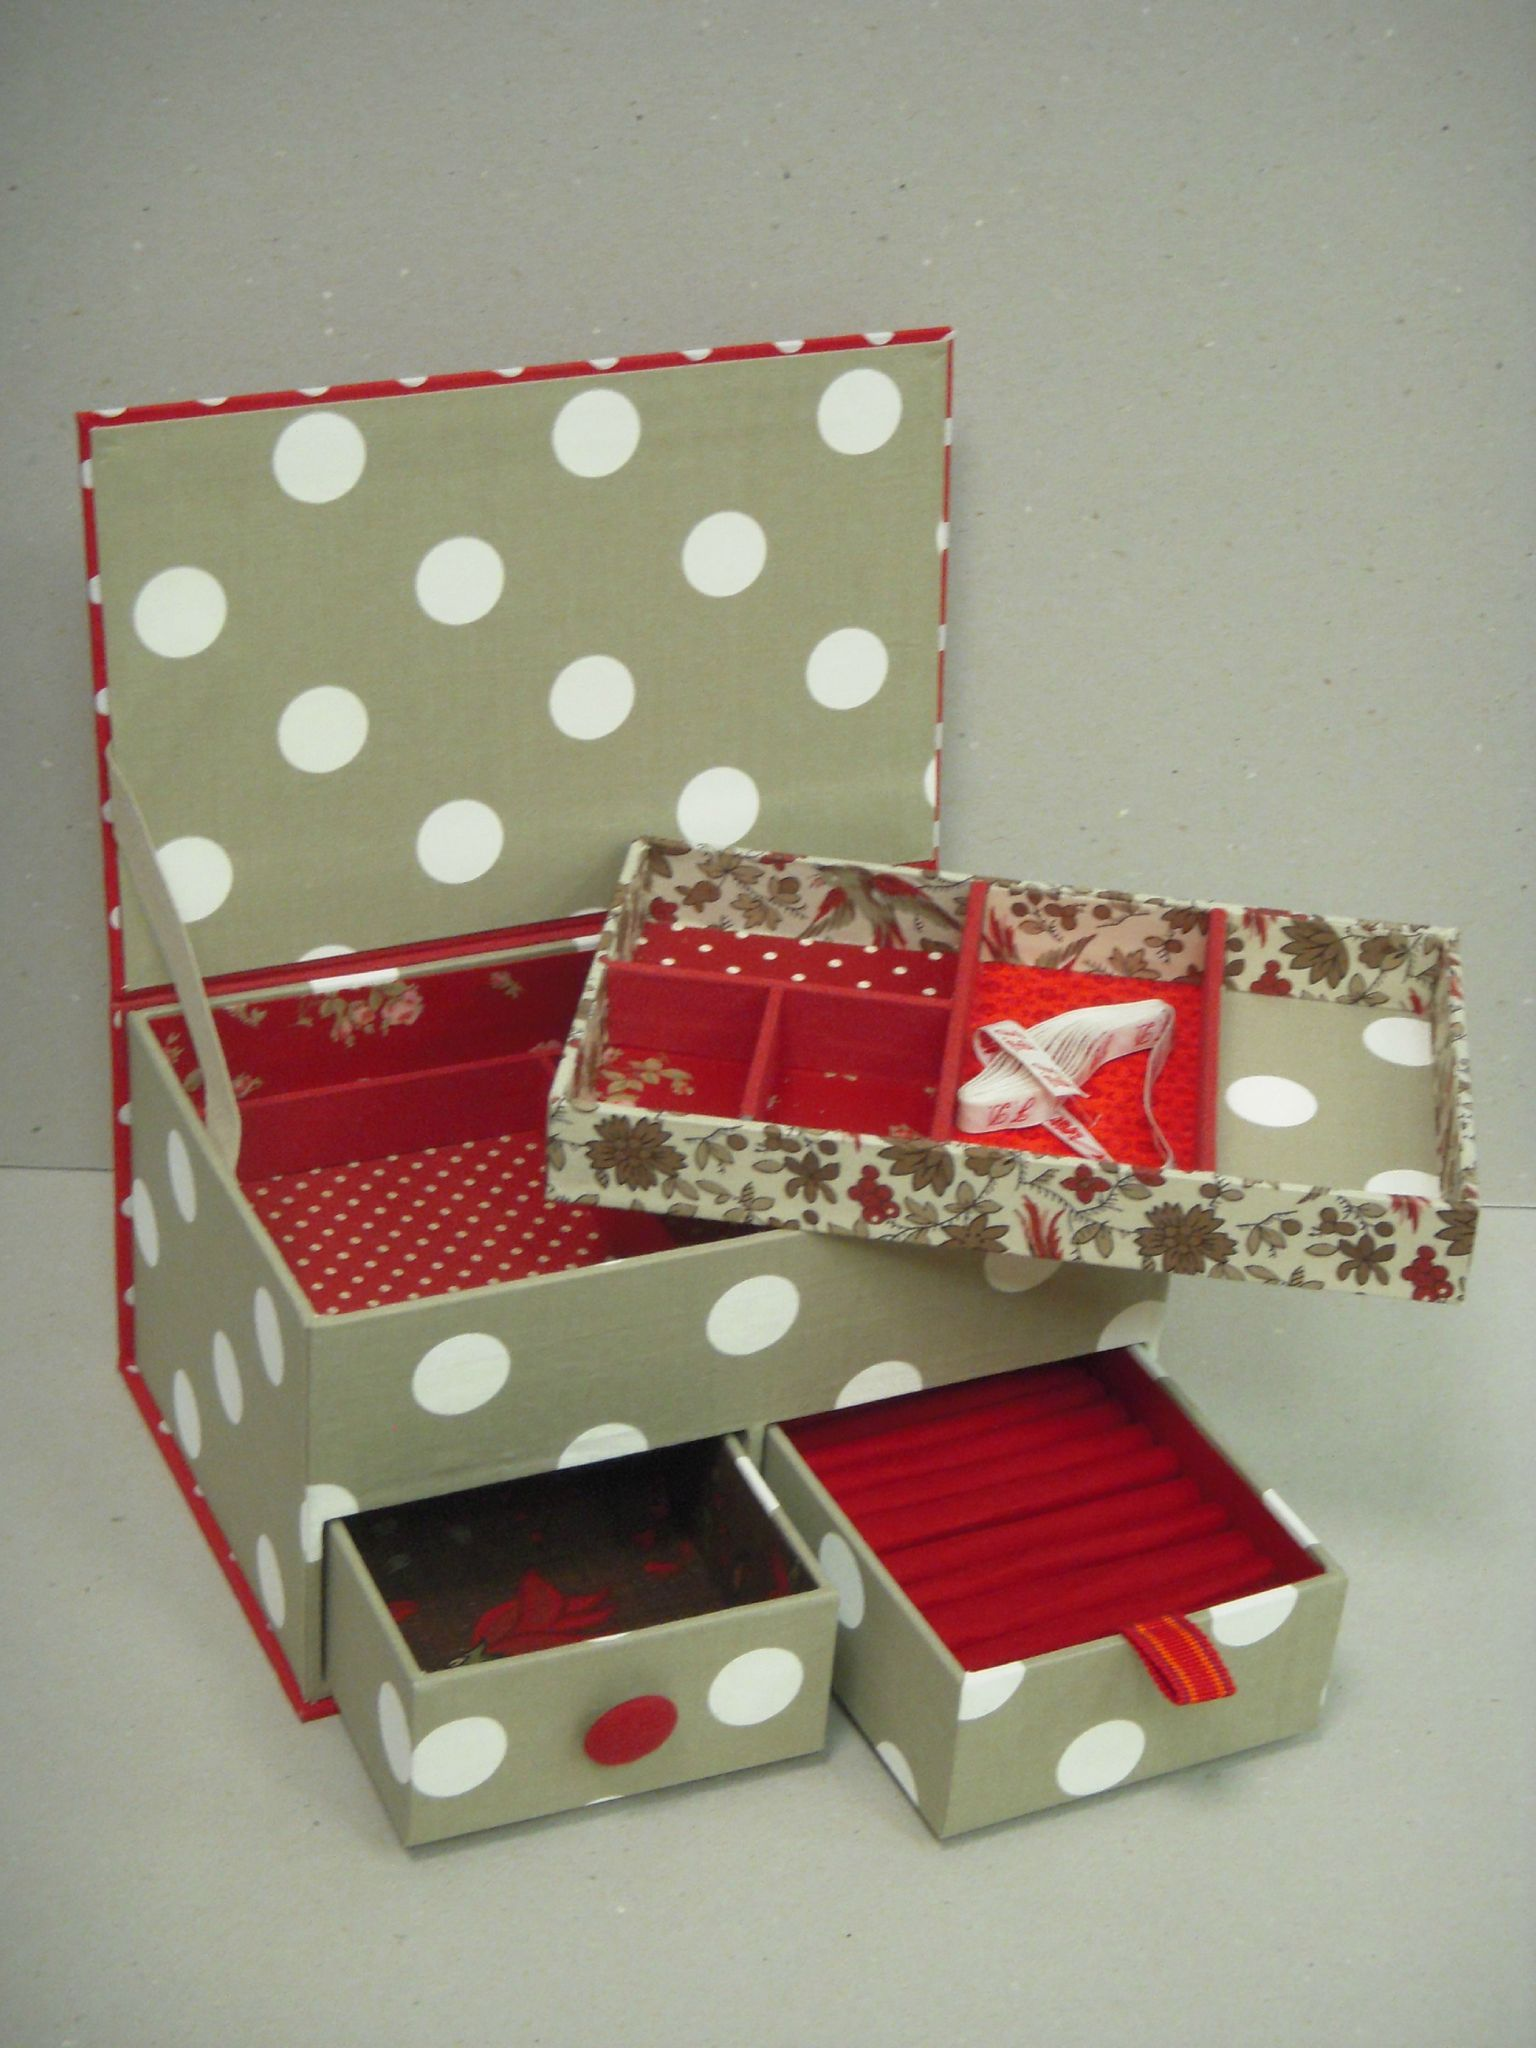 How To Decorate Boxes Boite À Bijoux  Cartonnage  Pinterest  Box Craft And Decorate Box